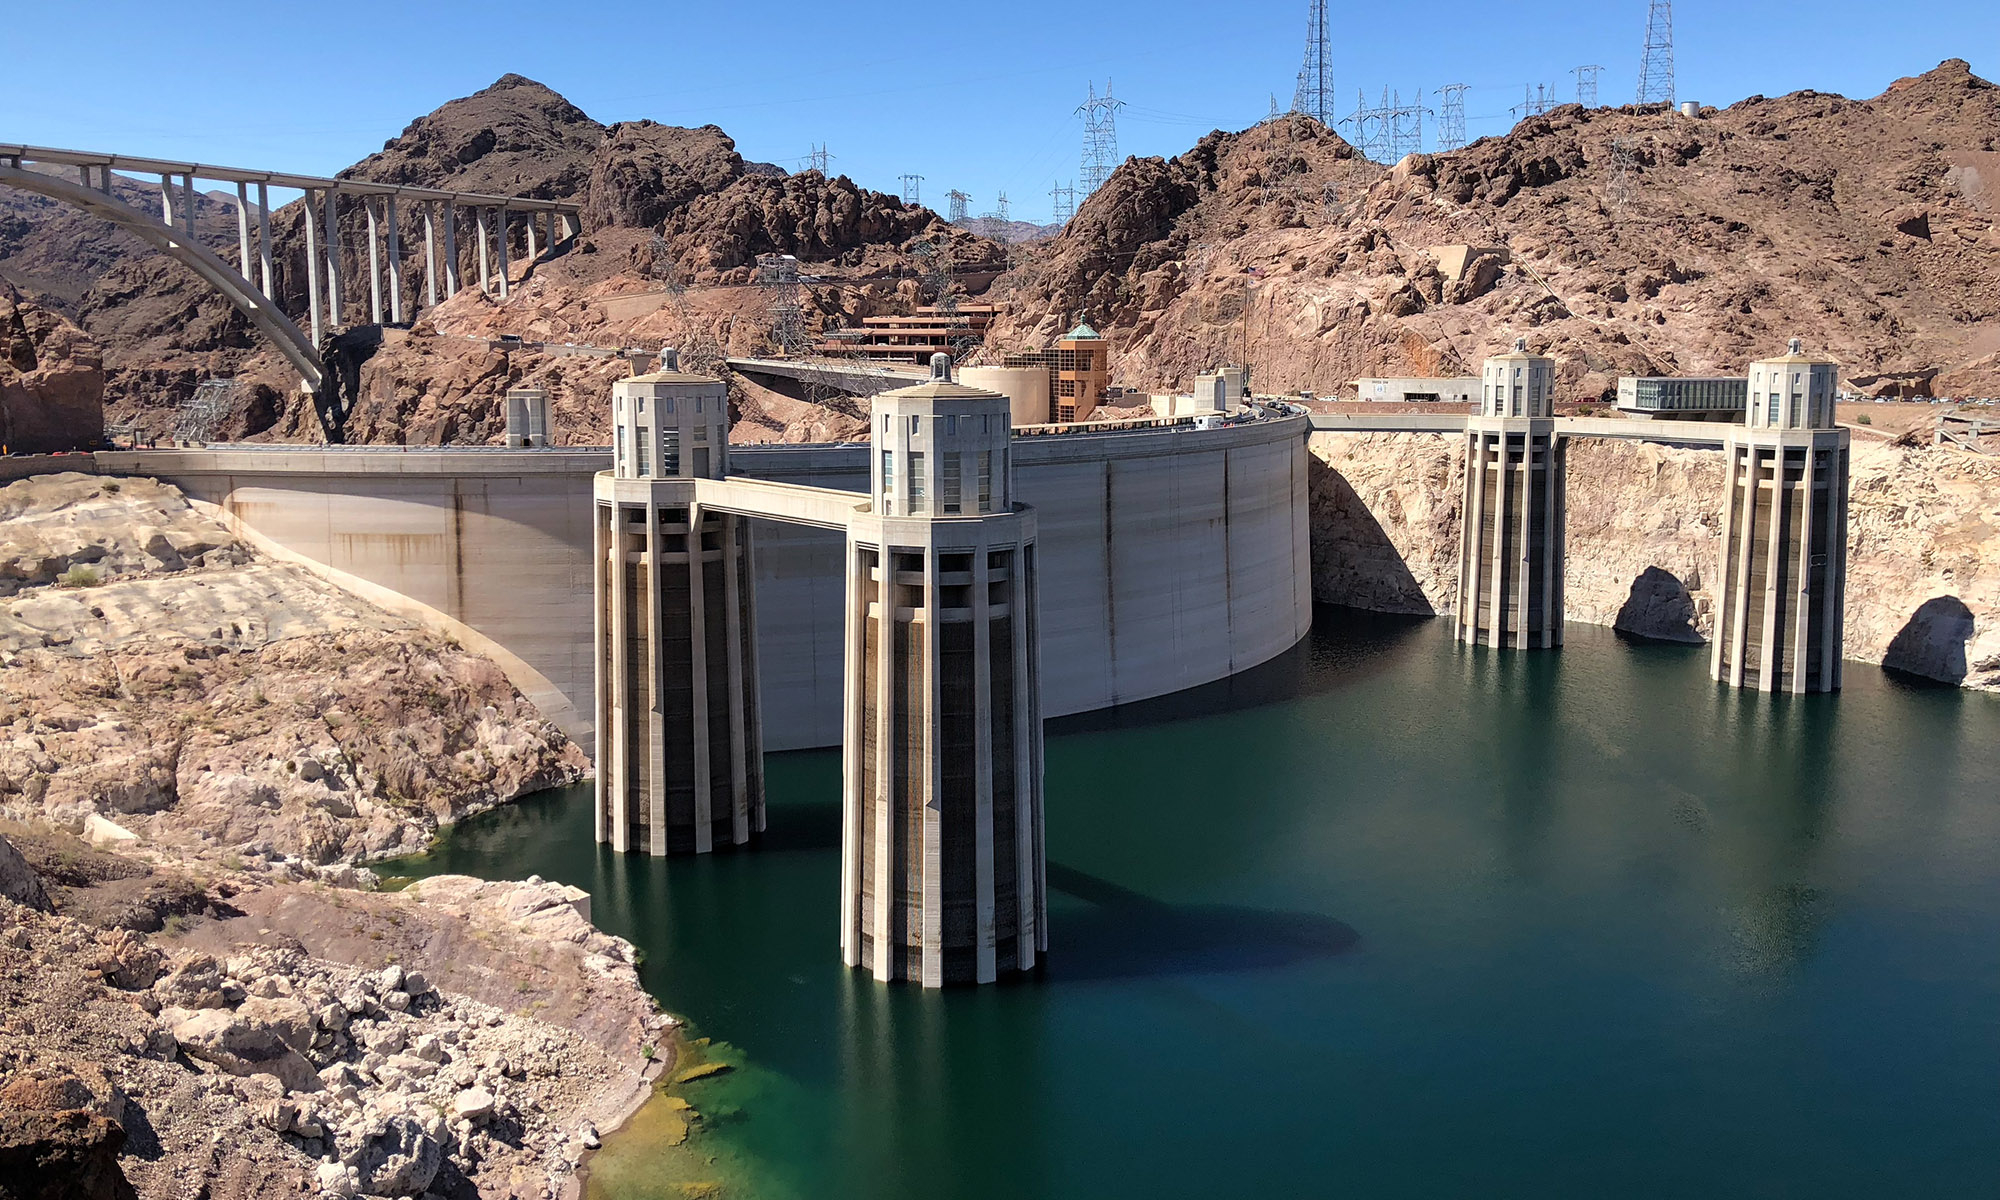 Hoover Dam's Penstock towers take in water from Lake Mead and use it to generate electricity. With less water, the dam generates less electricity, so officials replaced some of the dam's turbines to increase efficiency. (Photo by Jordan Evans/Cronkite News)